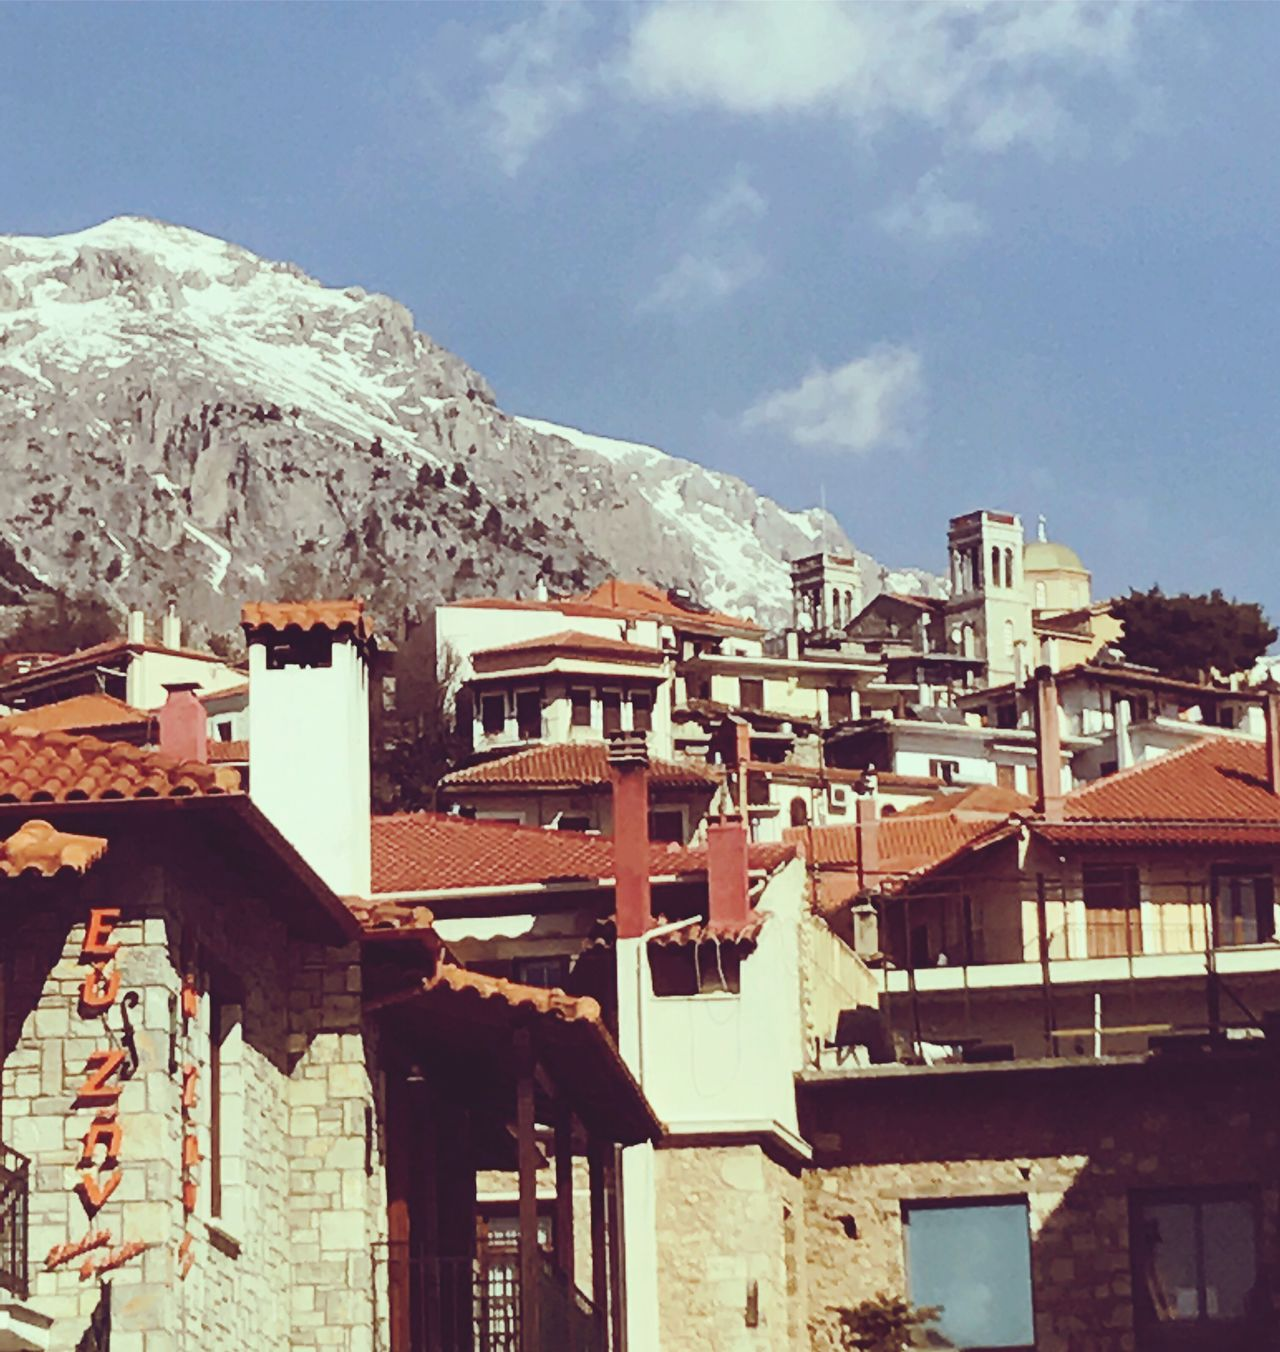 Arachova Town in Greece Greece Arachova Tourism Mountain Mountain View Snow Houses Architecture Building Exterior Roof Outdoors Cityscape Nature EyeEm Best Shots No People Sky Stonewalls Hellas